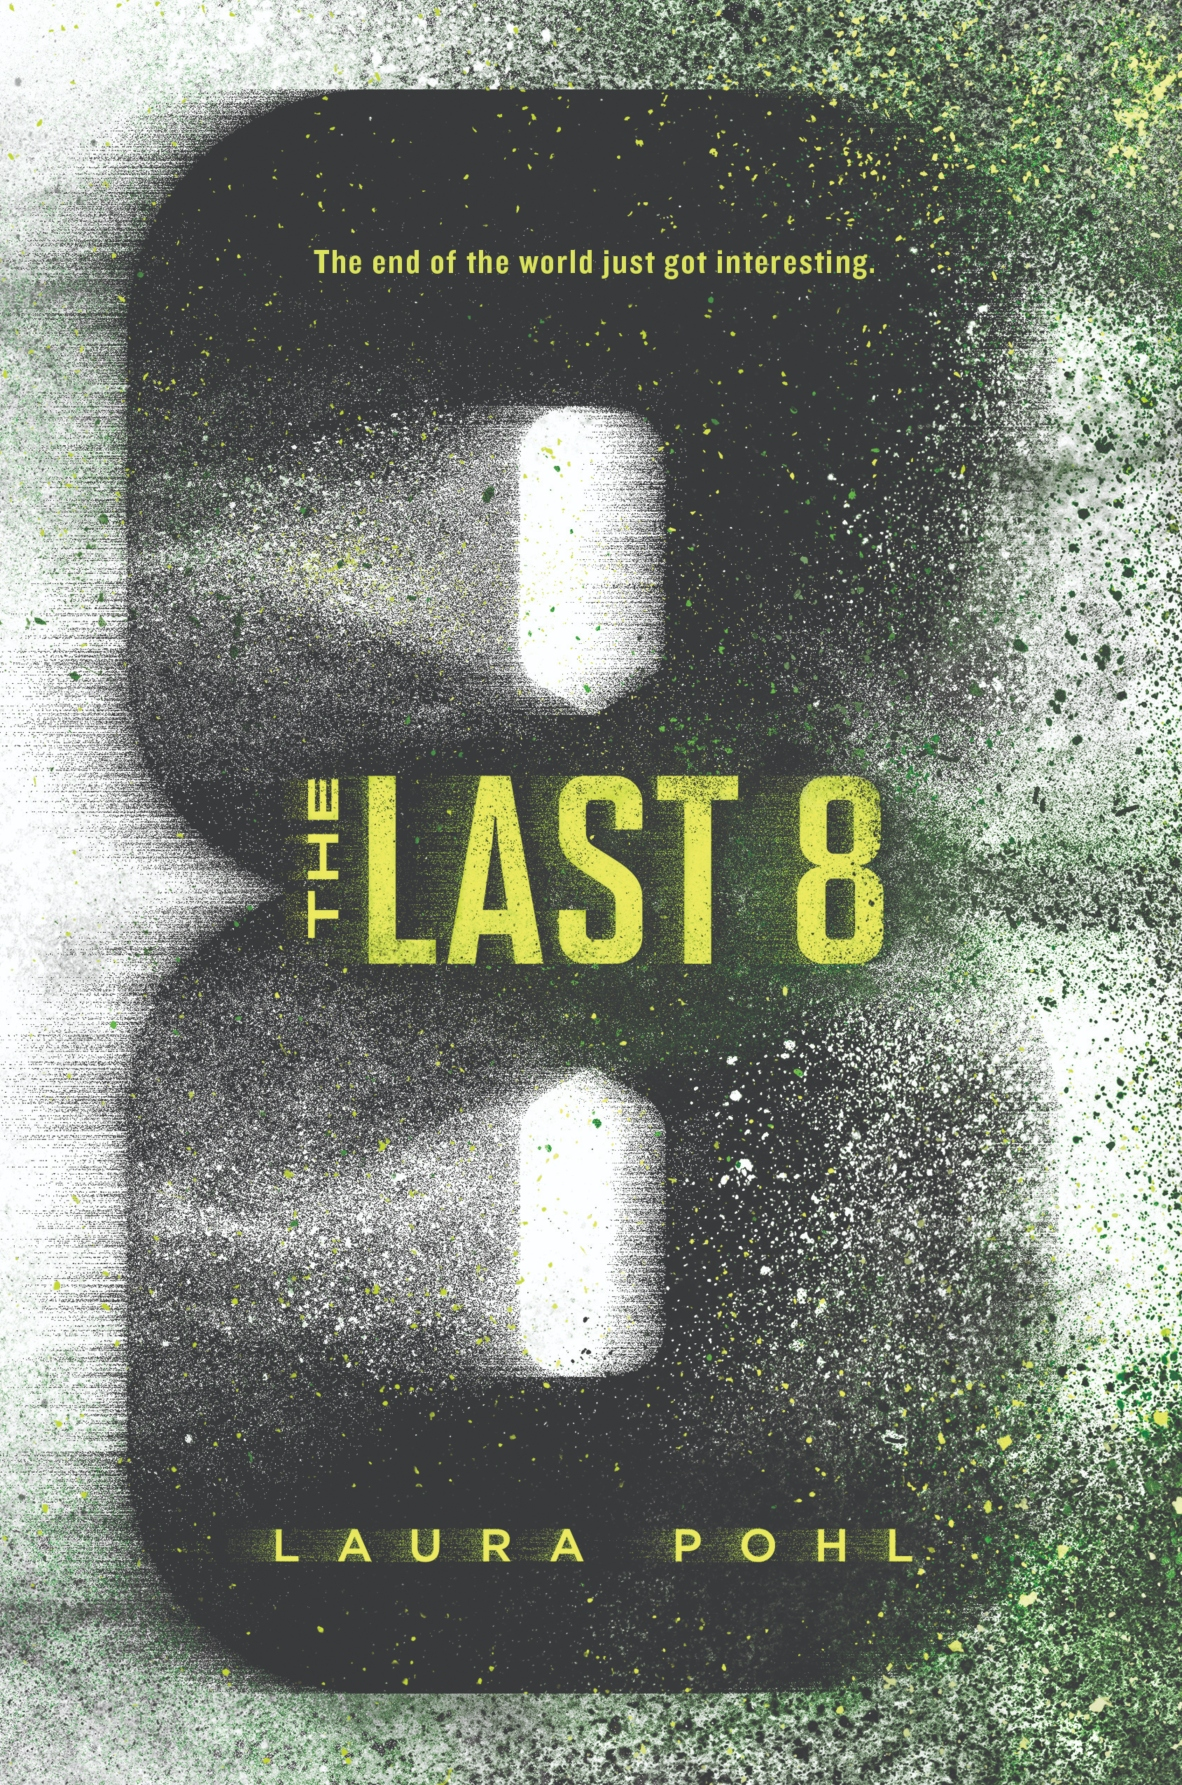 The Last 8 by Laura Pohl